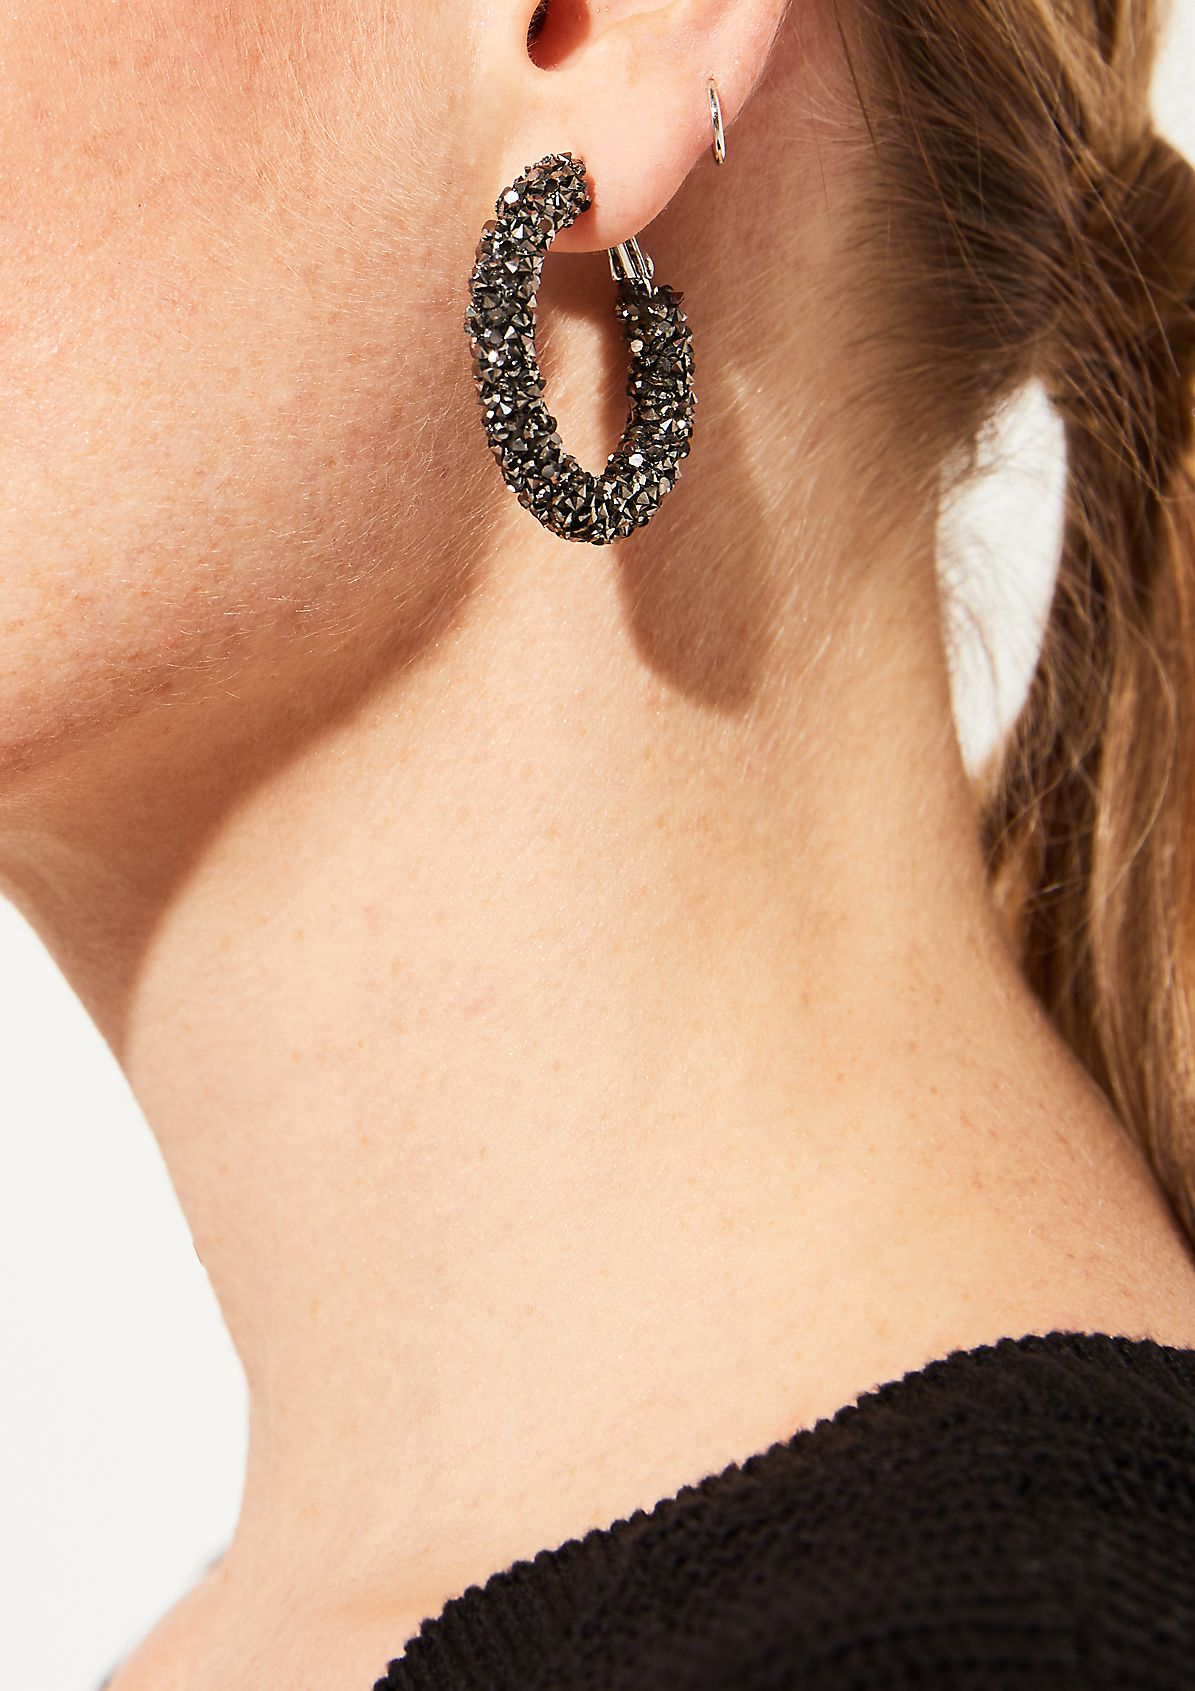 Hoop earrings with sparkling rhinestone embellishments from comma